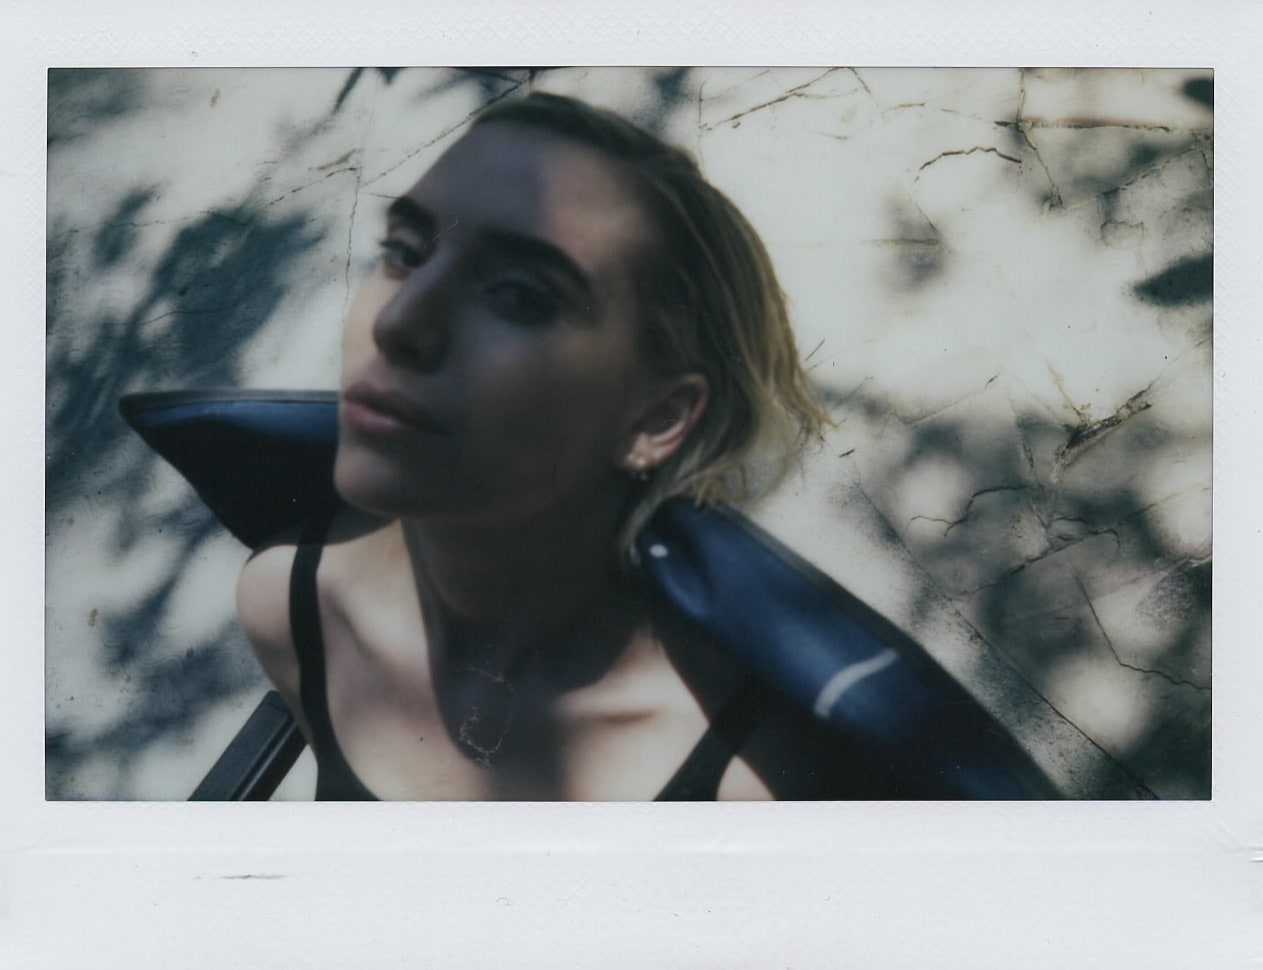 The world is nuts, so Lykke Li is surviving by being honest